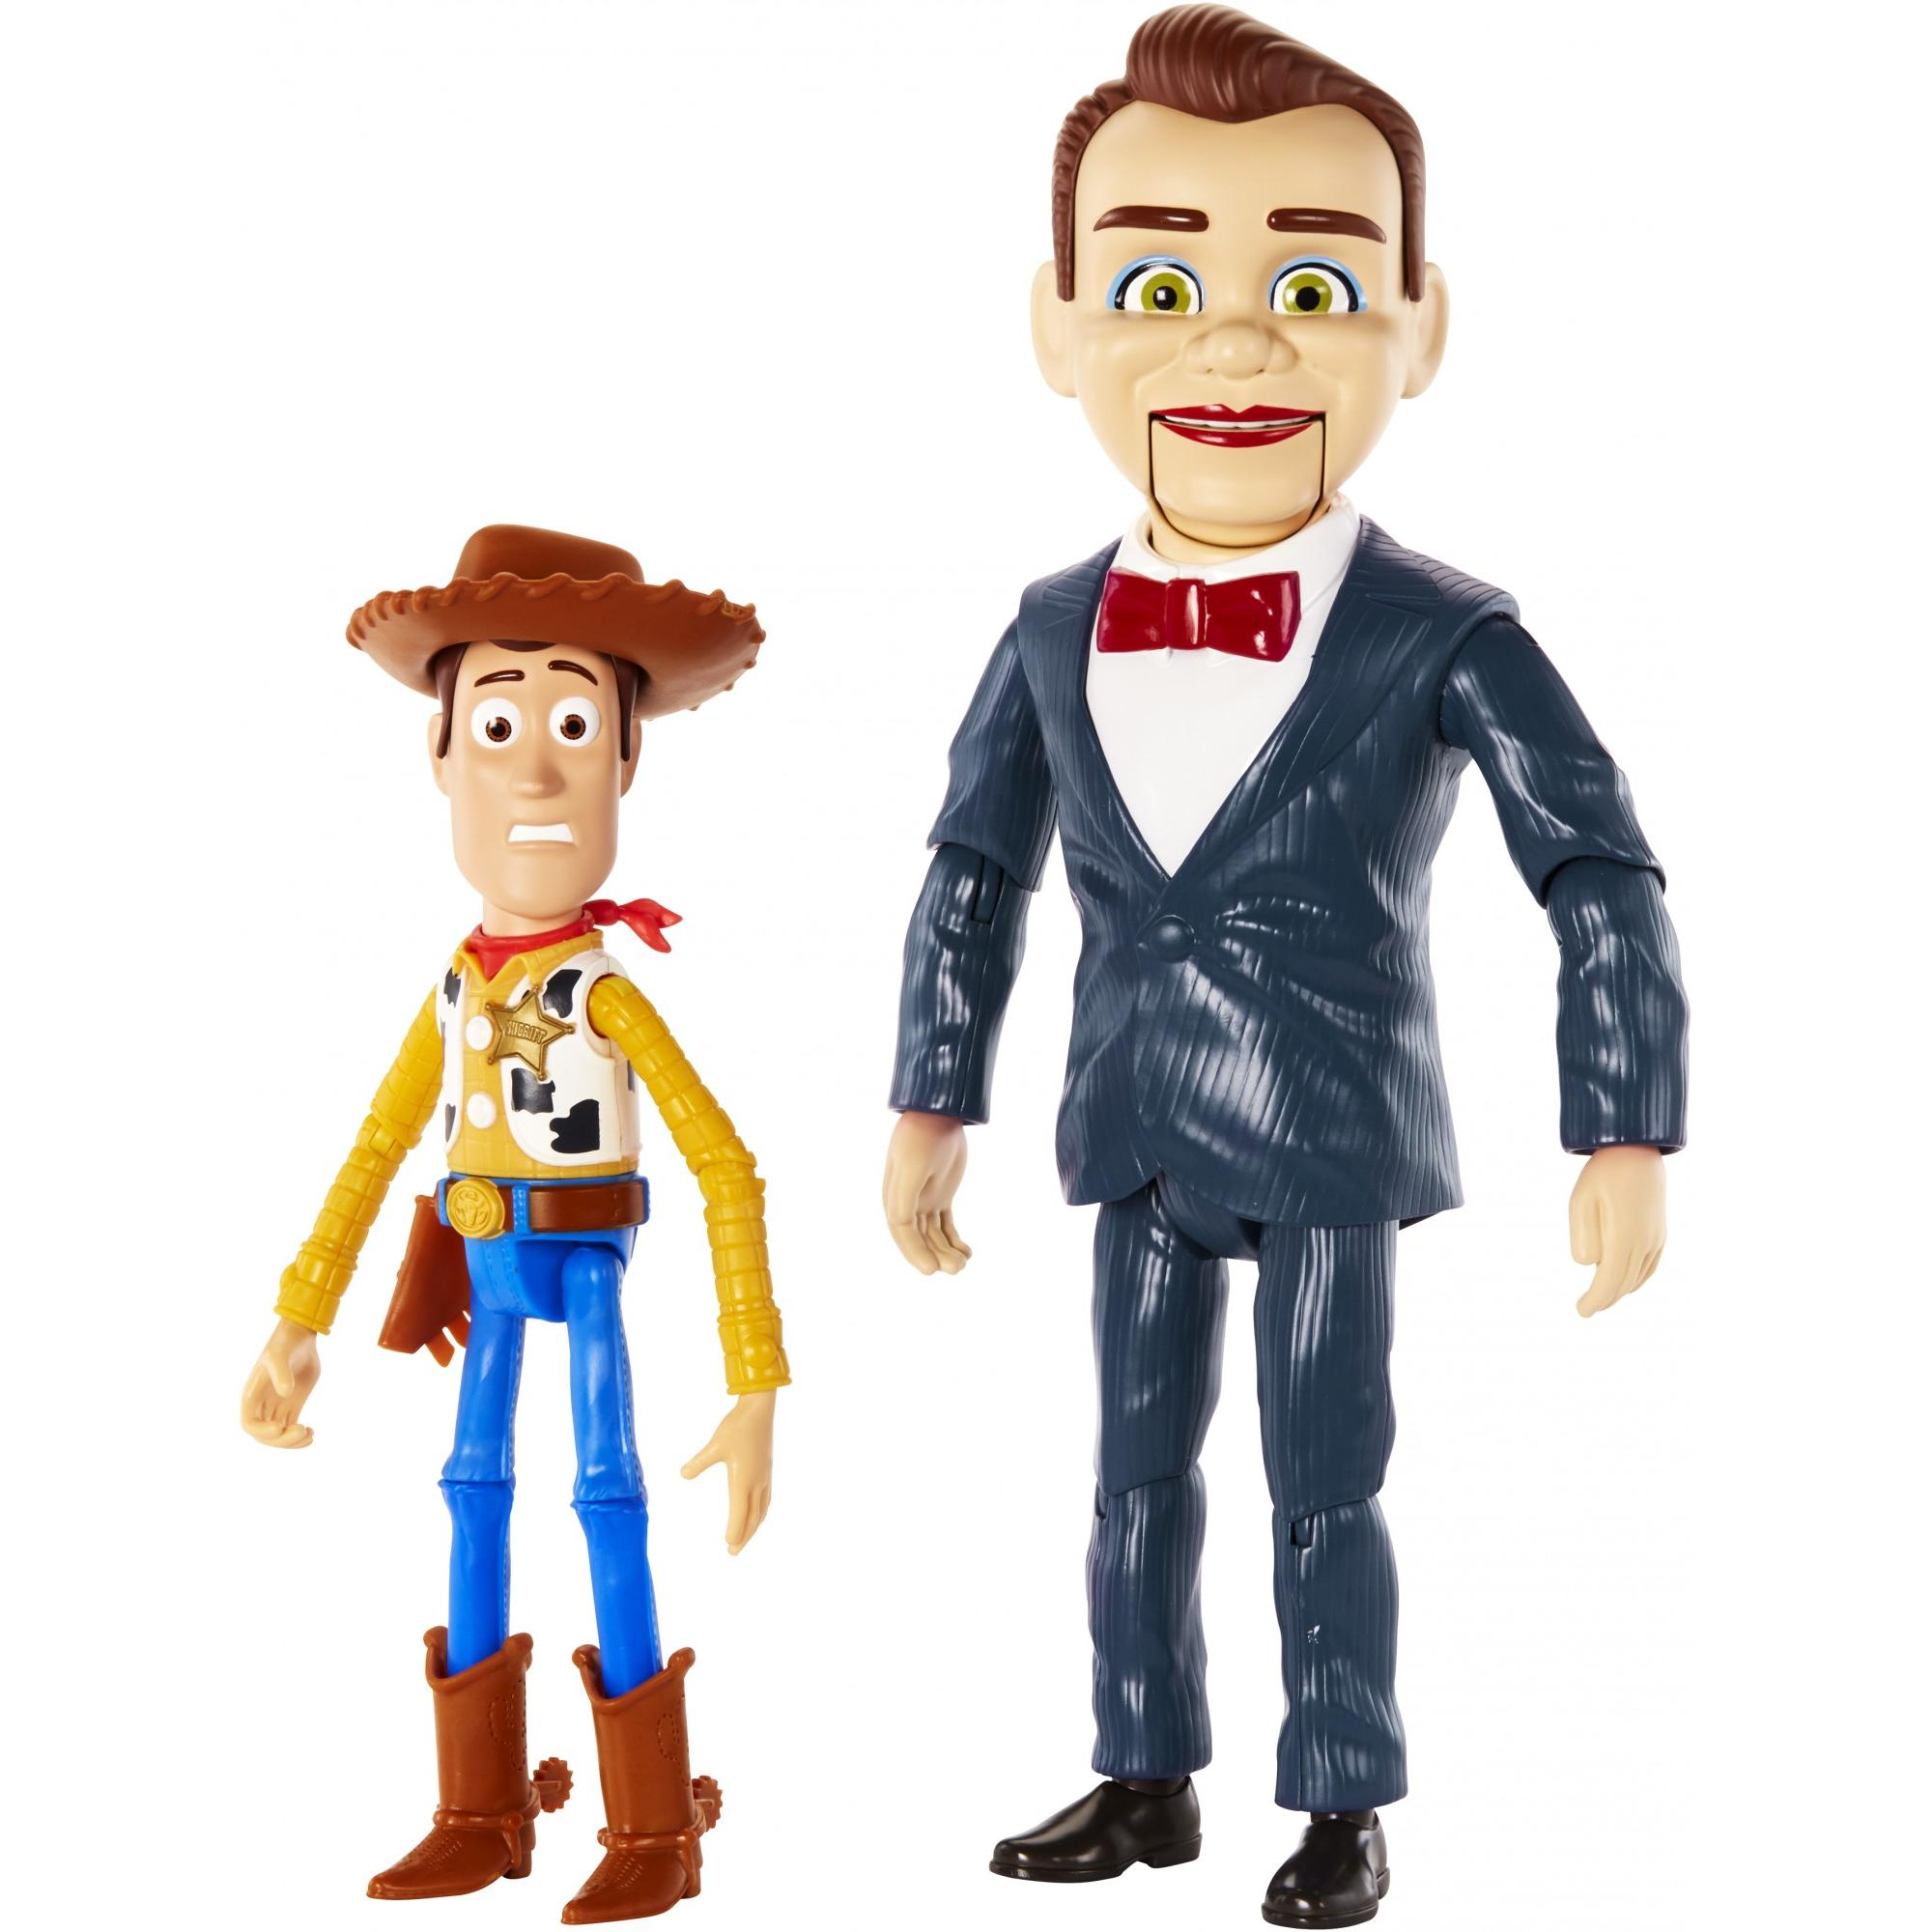 Phone toy story 2 characters old man cowboys